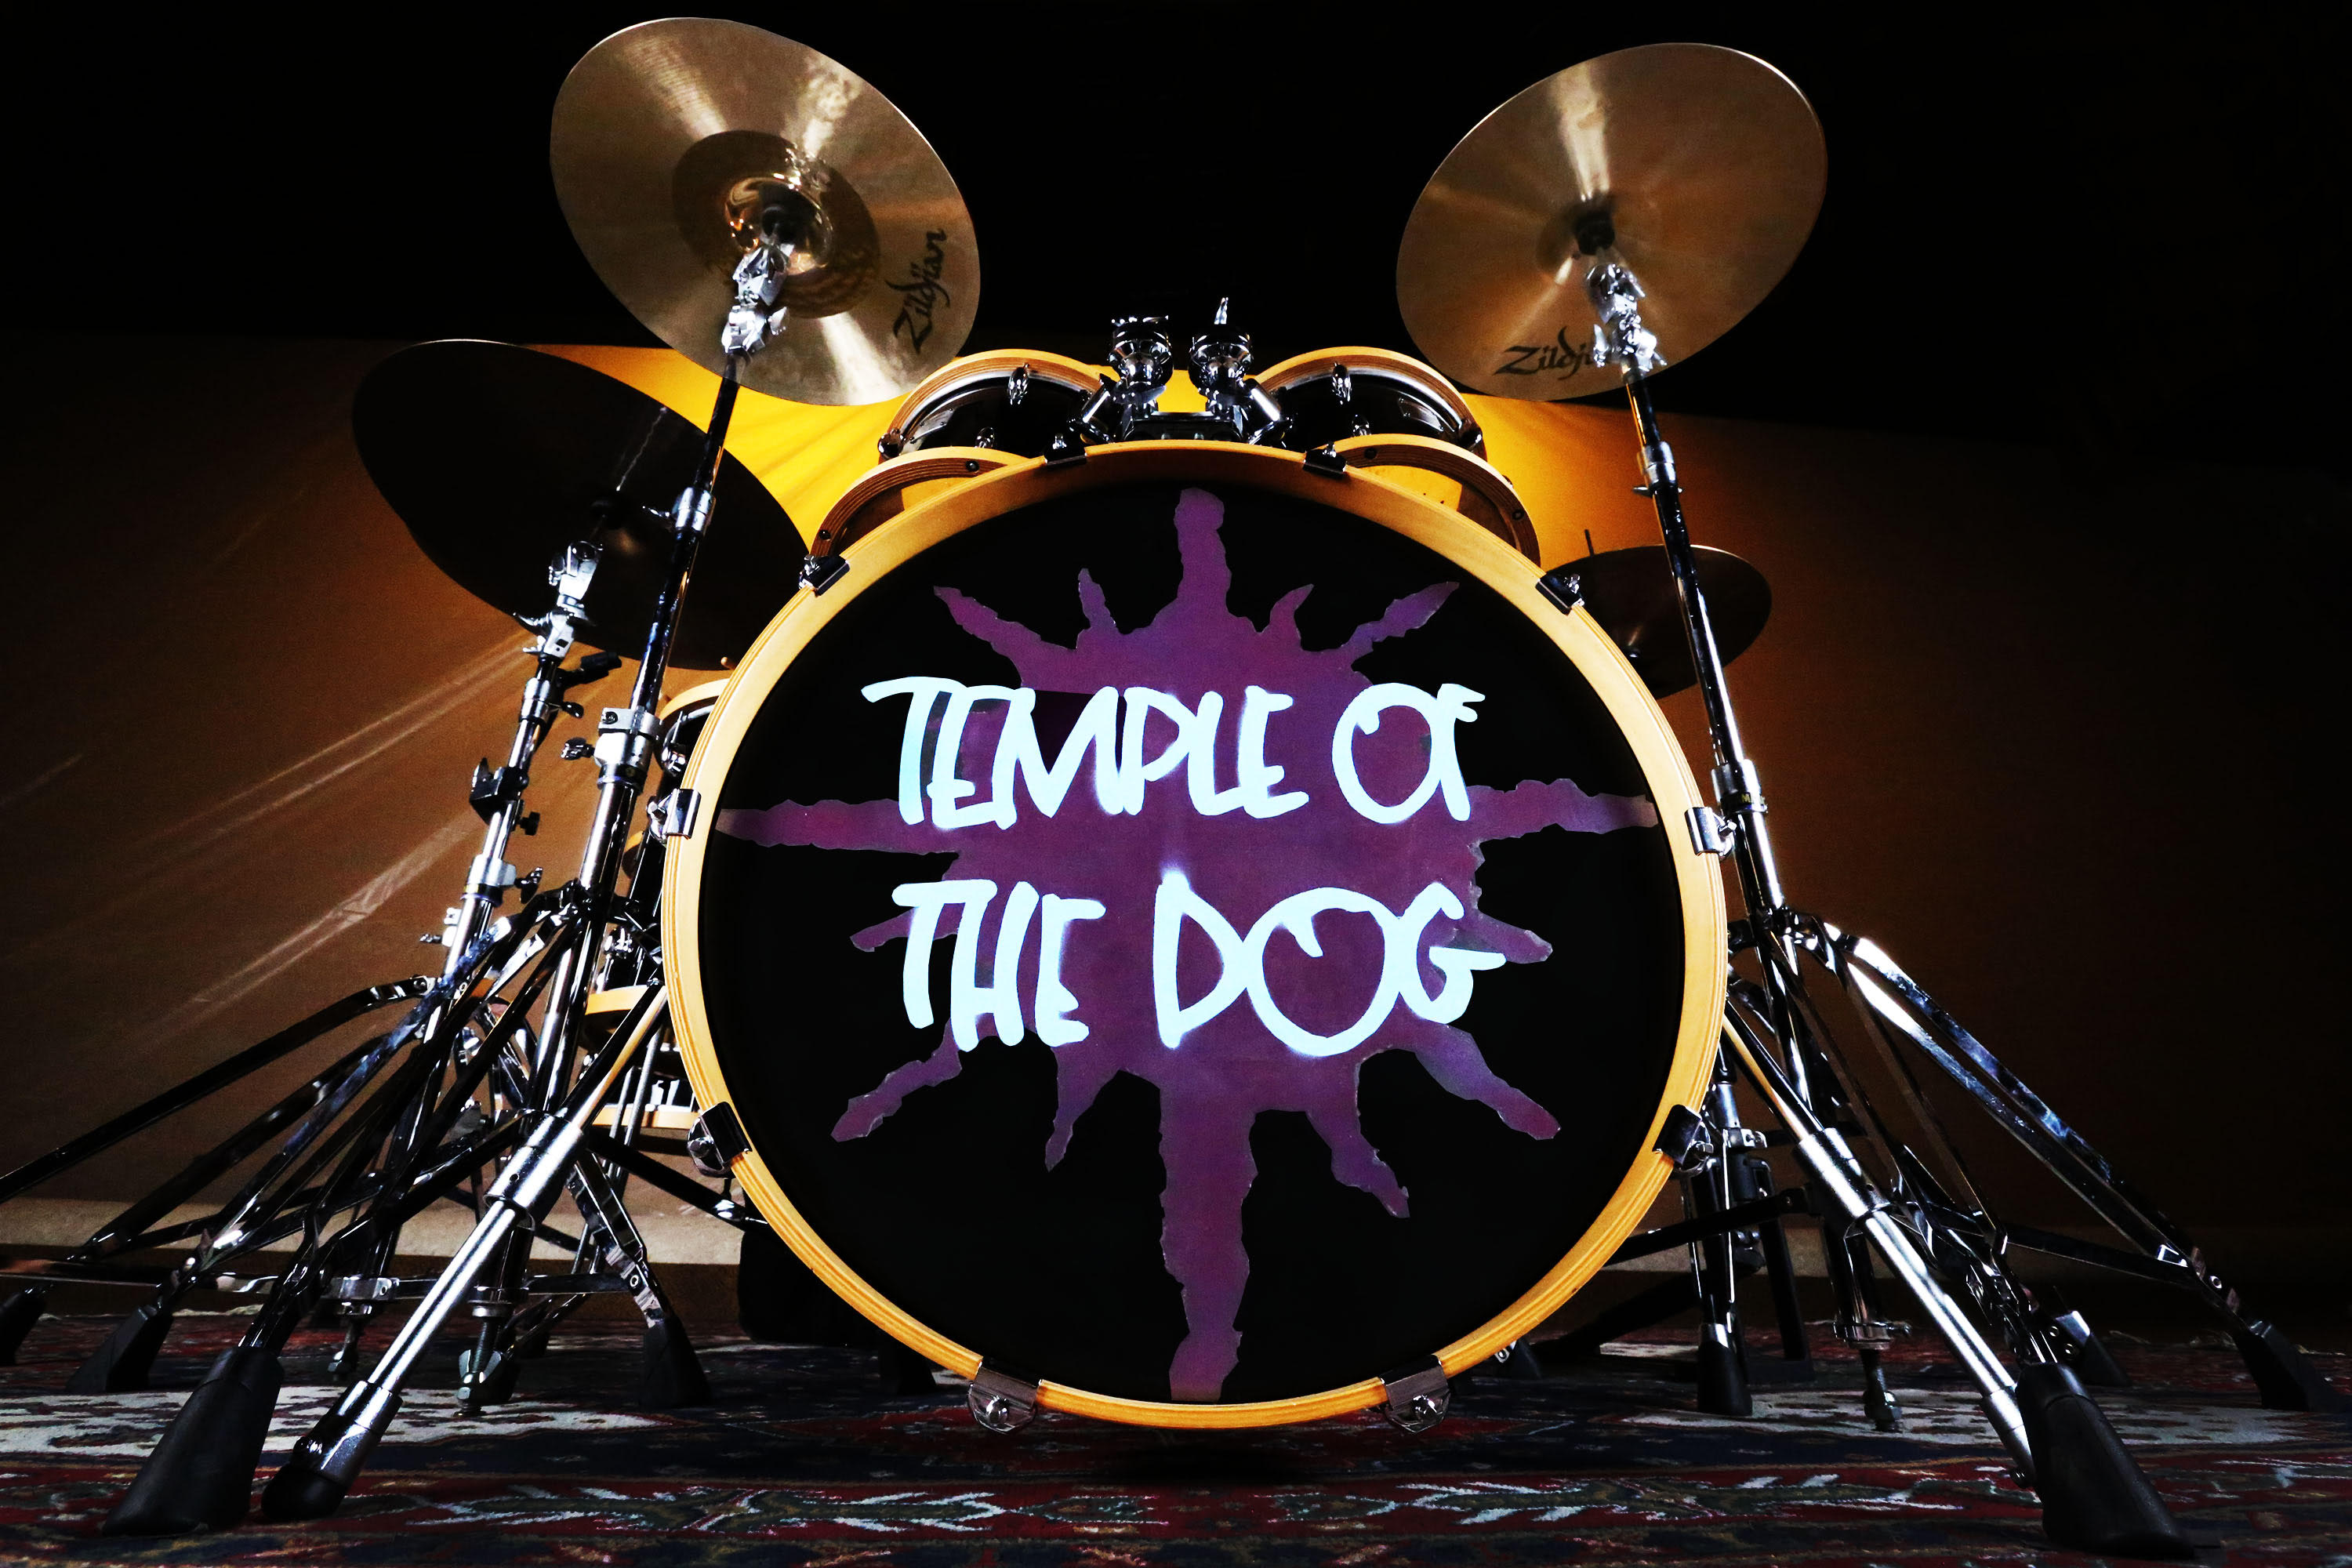 temple of the dog tickets seattle